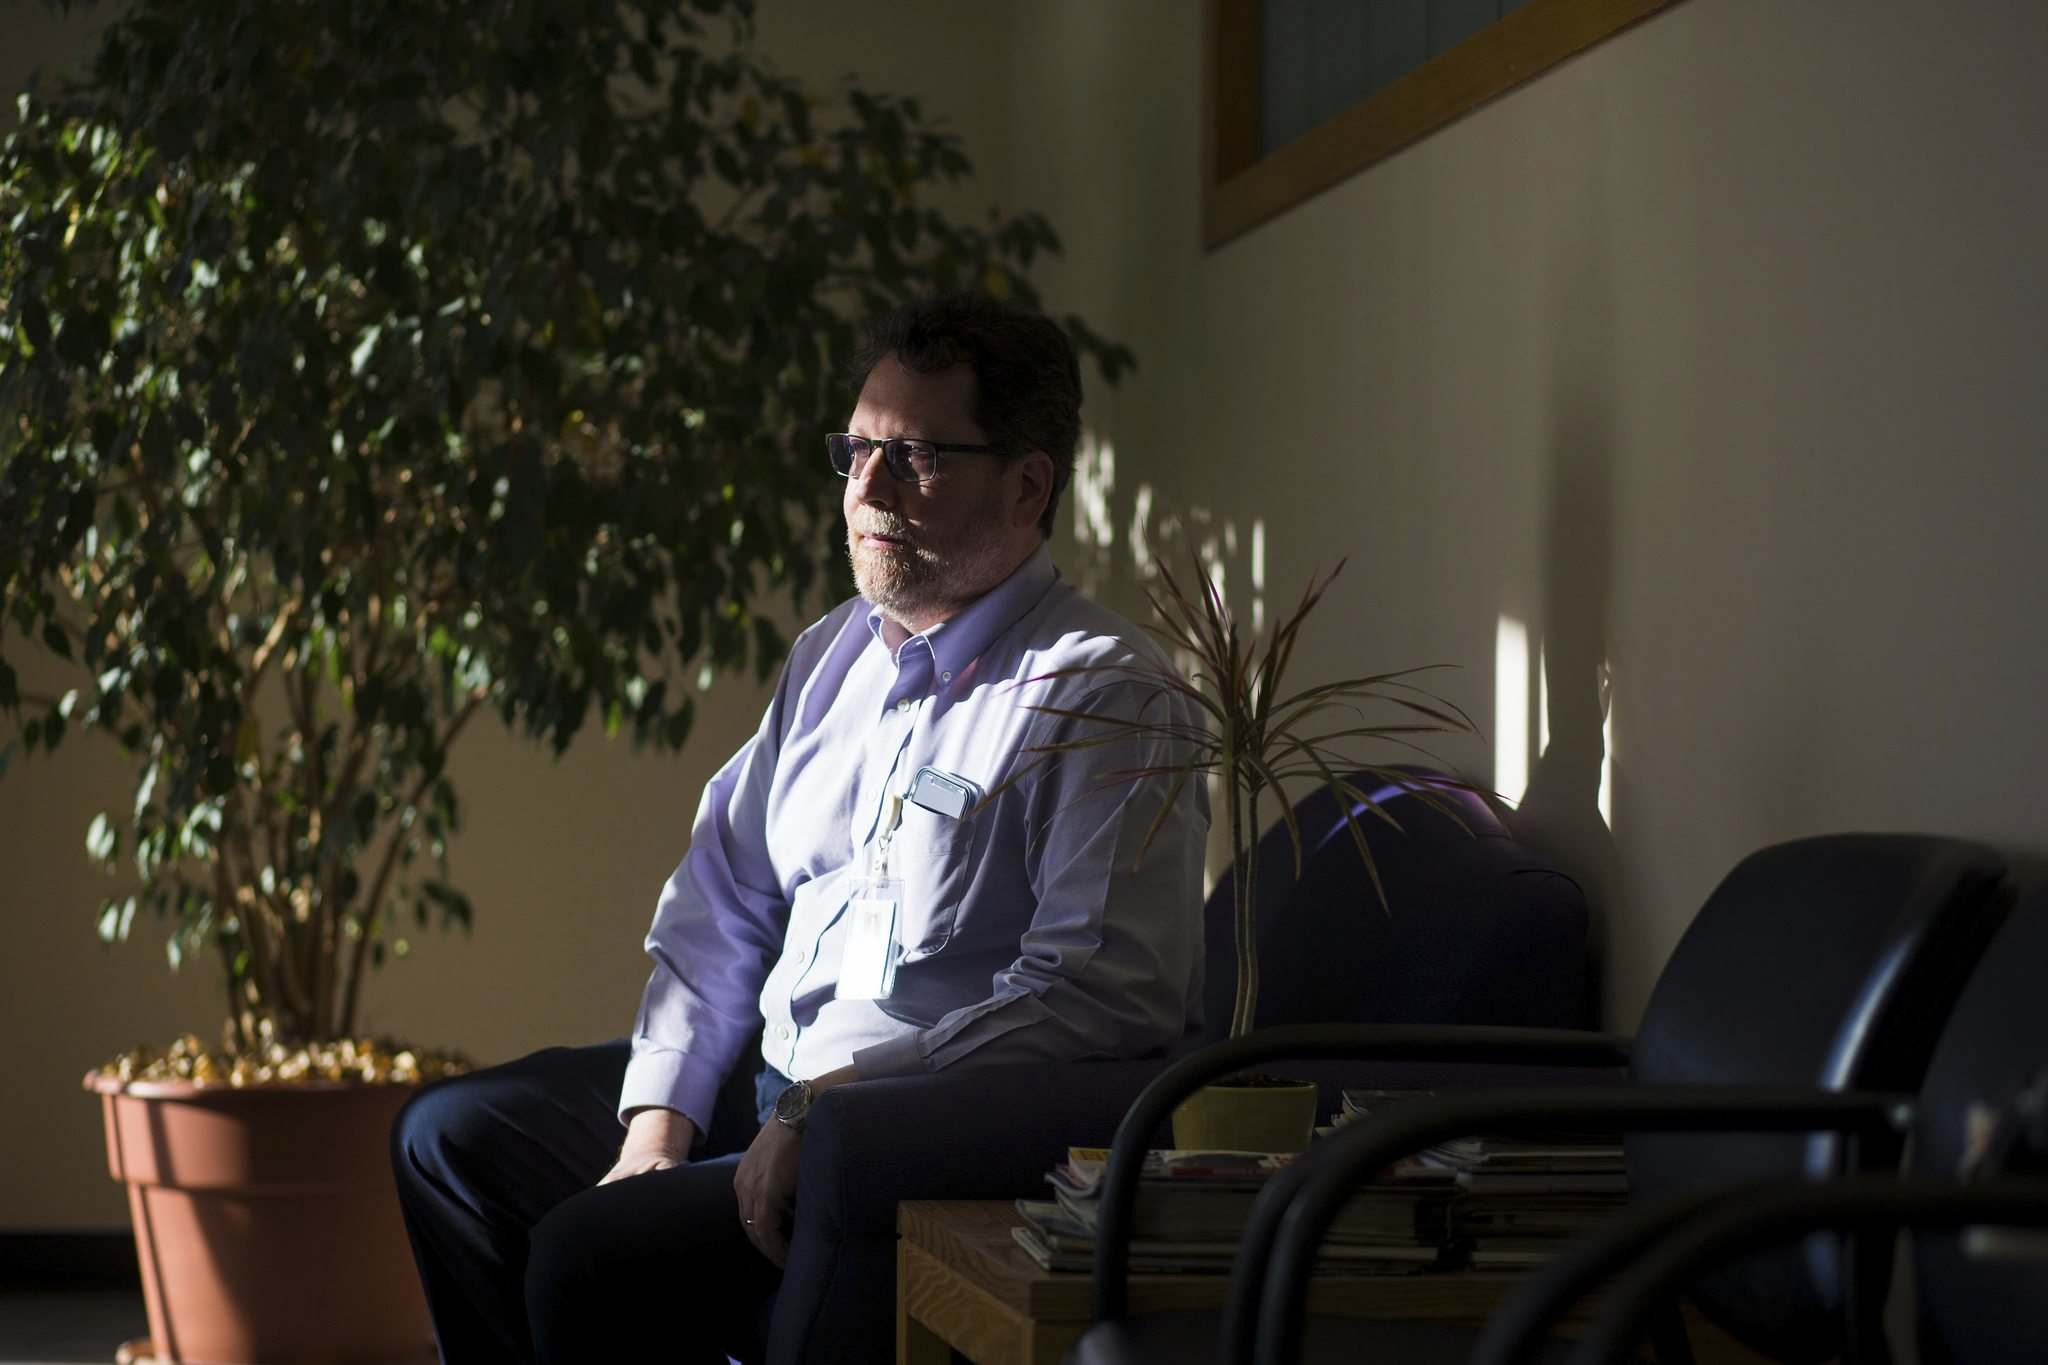 MIKAELA MACKENZIE / WINNIPEG FREE PRESS</p><p>Dr. David Strang says dementia 'can be a very scary diagnosis because it threatens your sense of identity.'</p>